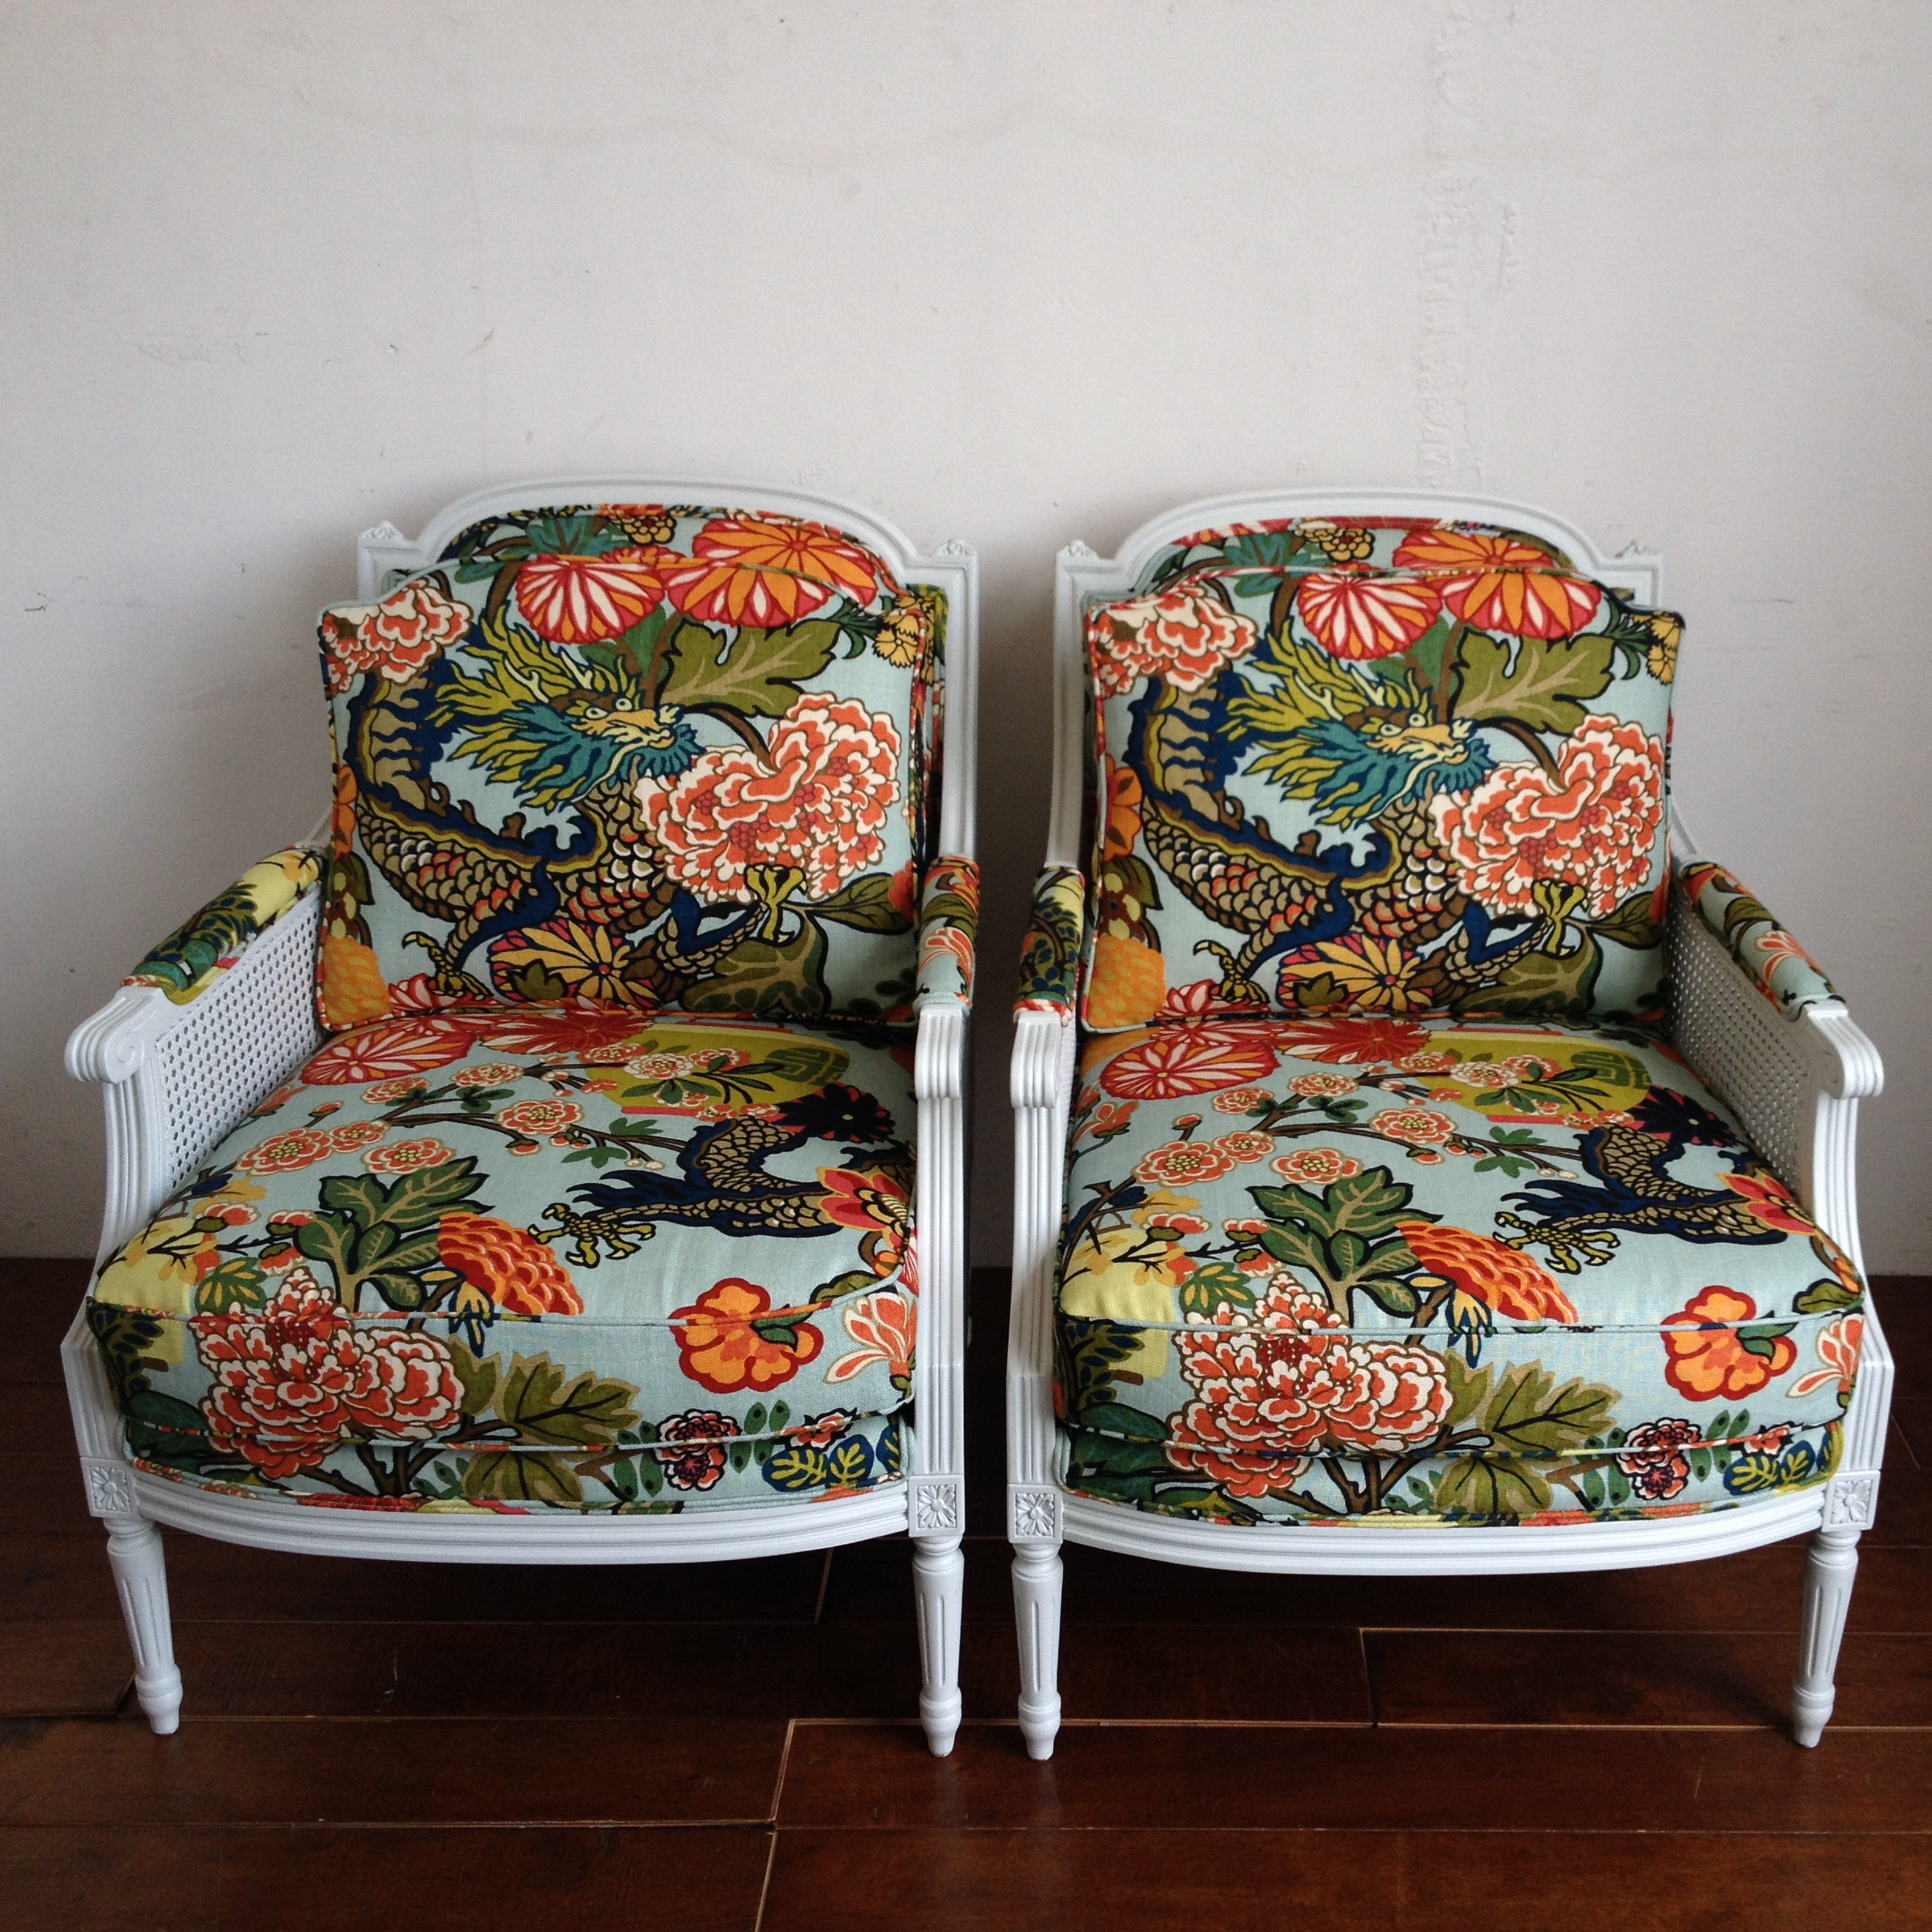 CHAING MAI DRAGON CHAIRS